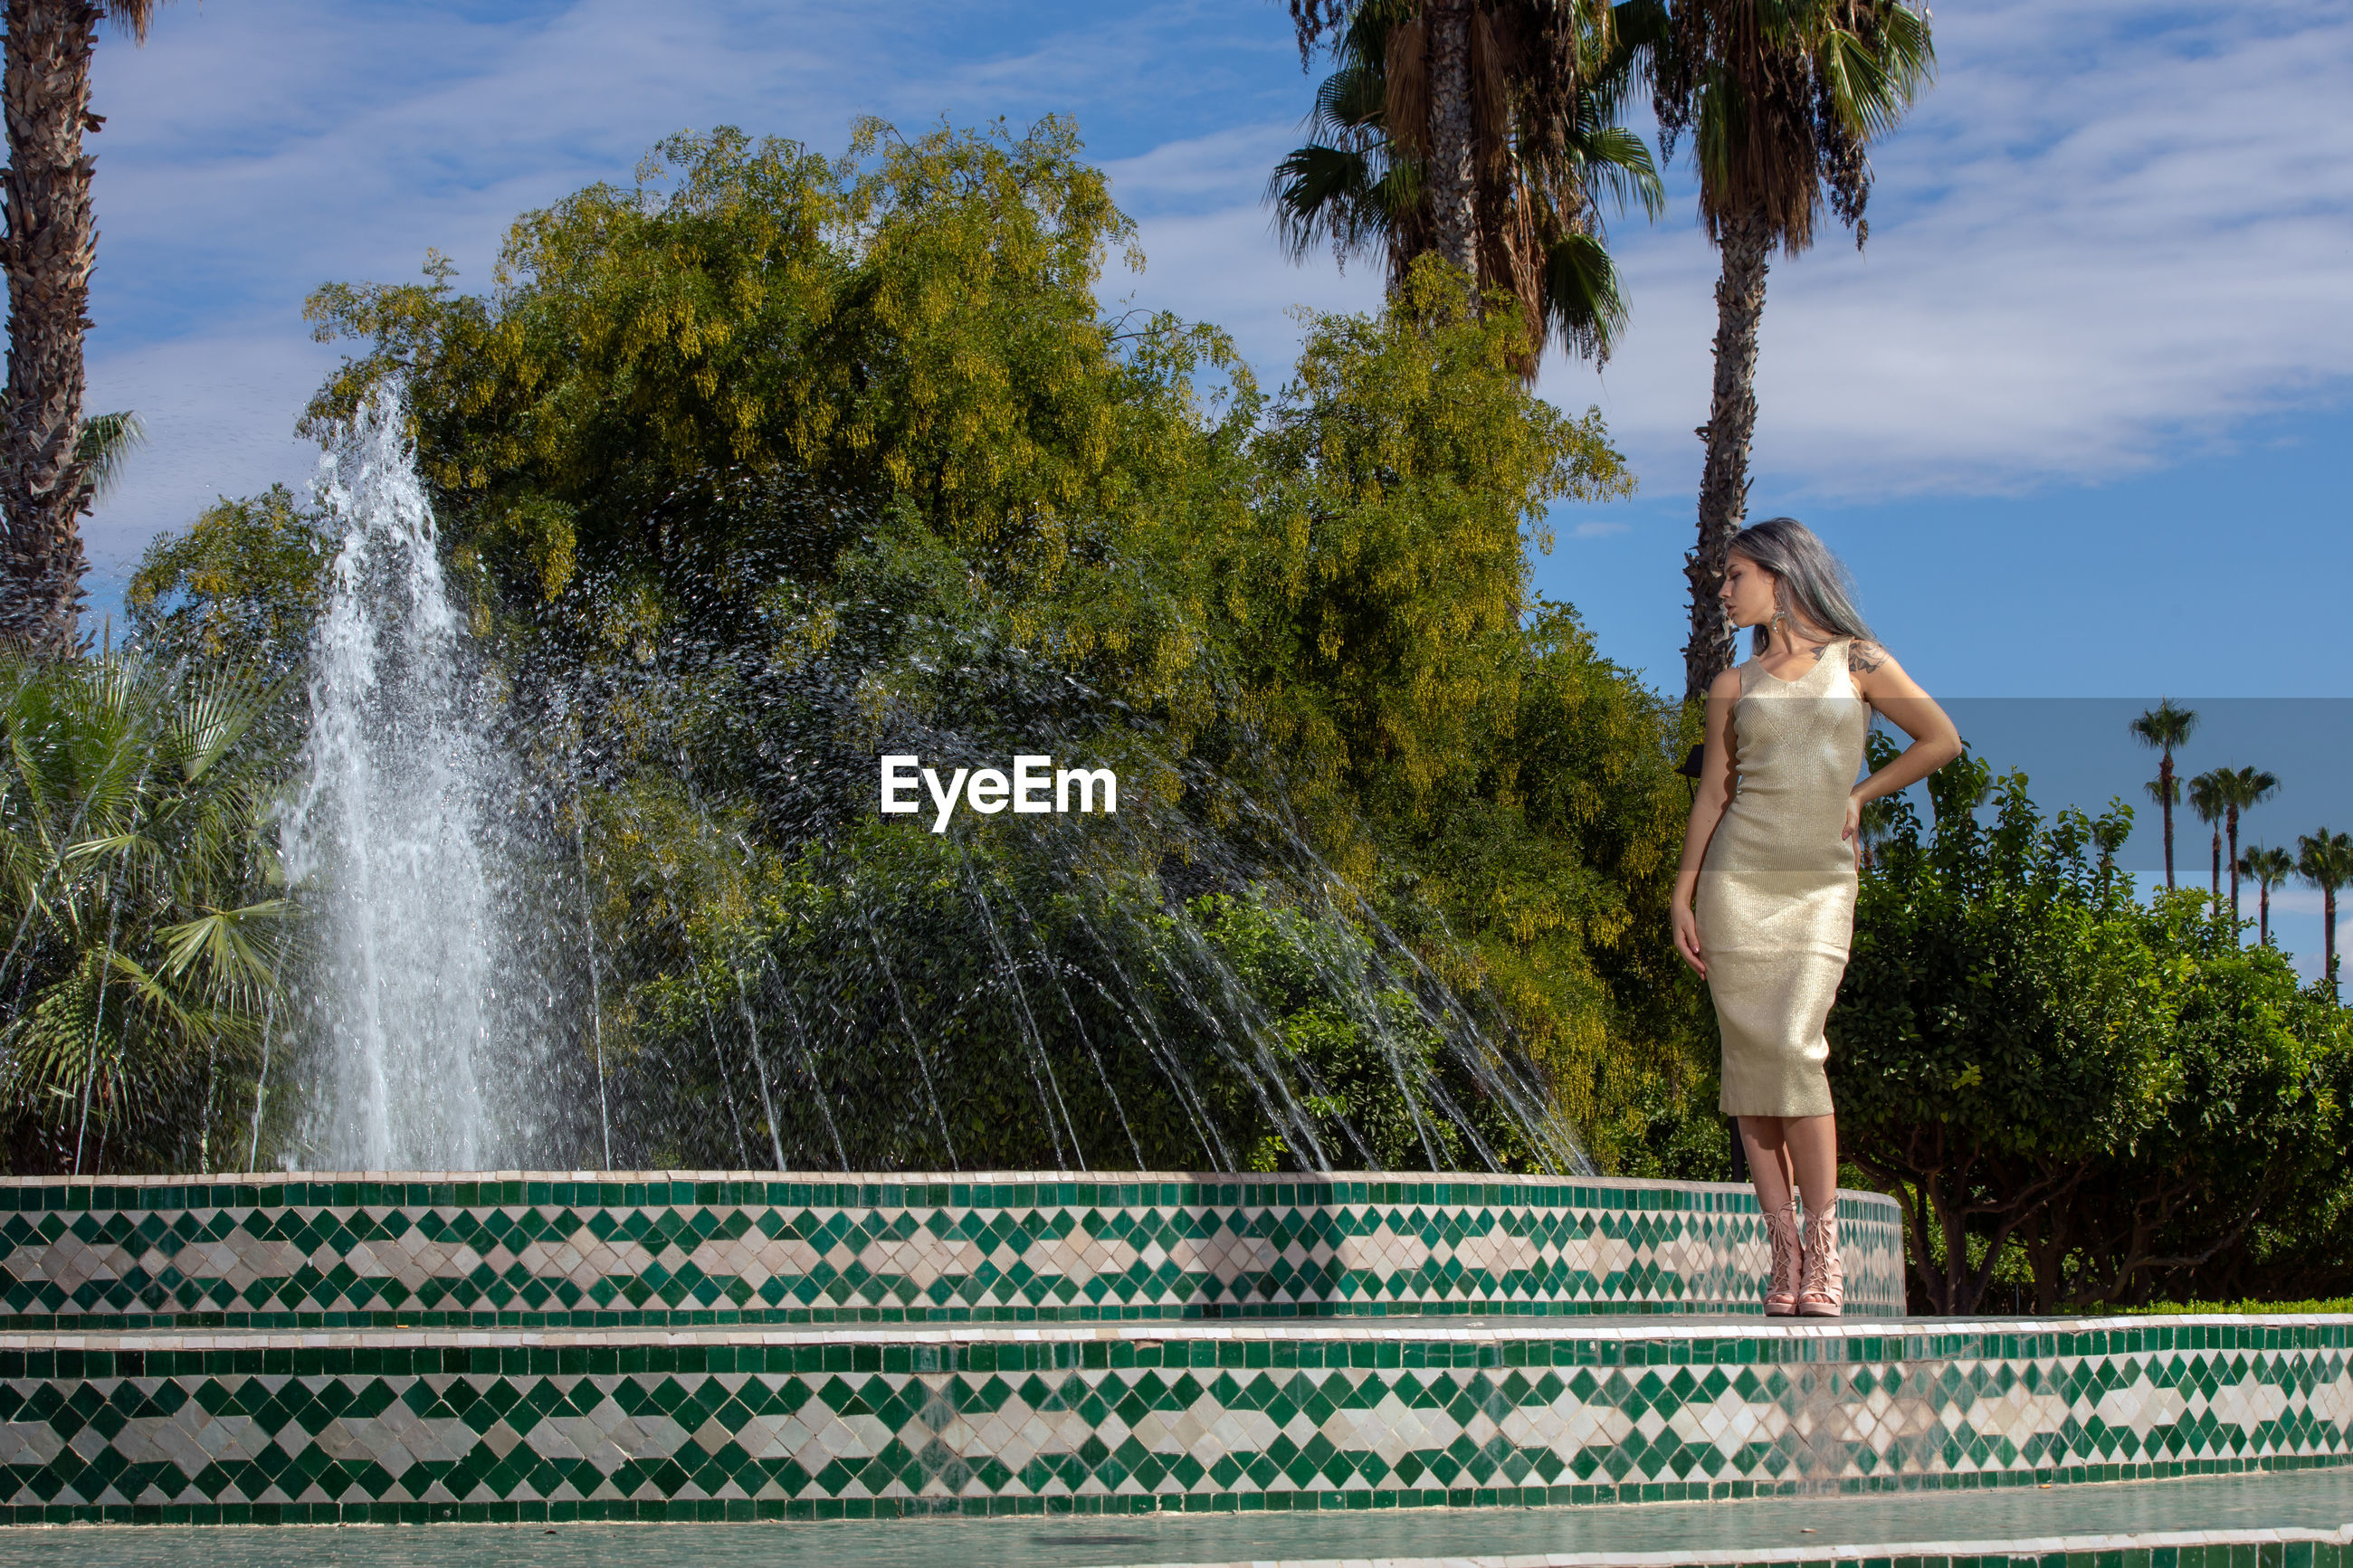 Woman standing by fountain against trees